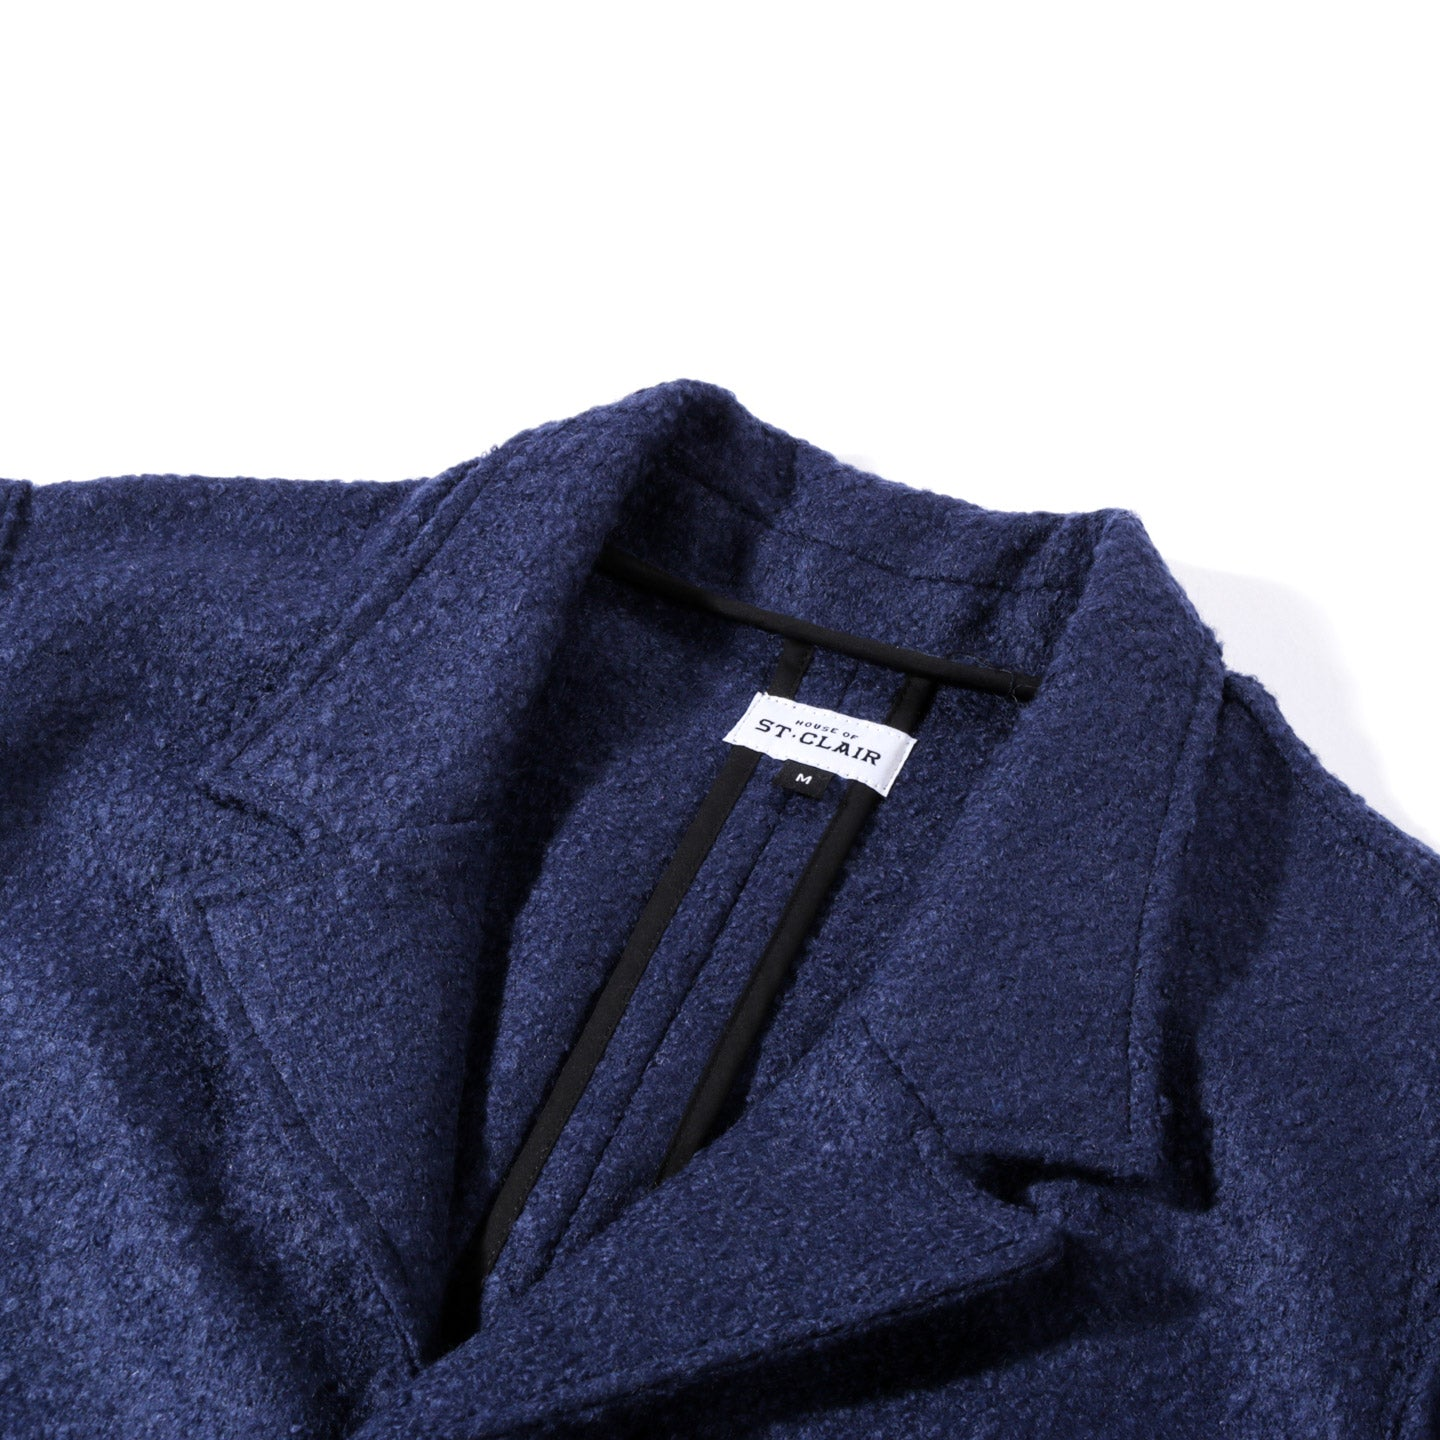 HOUSE OF ST. CLAIR CASS JACKET NAVY BOILED WOOL